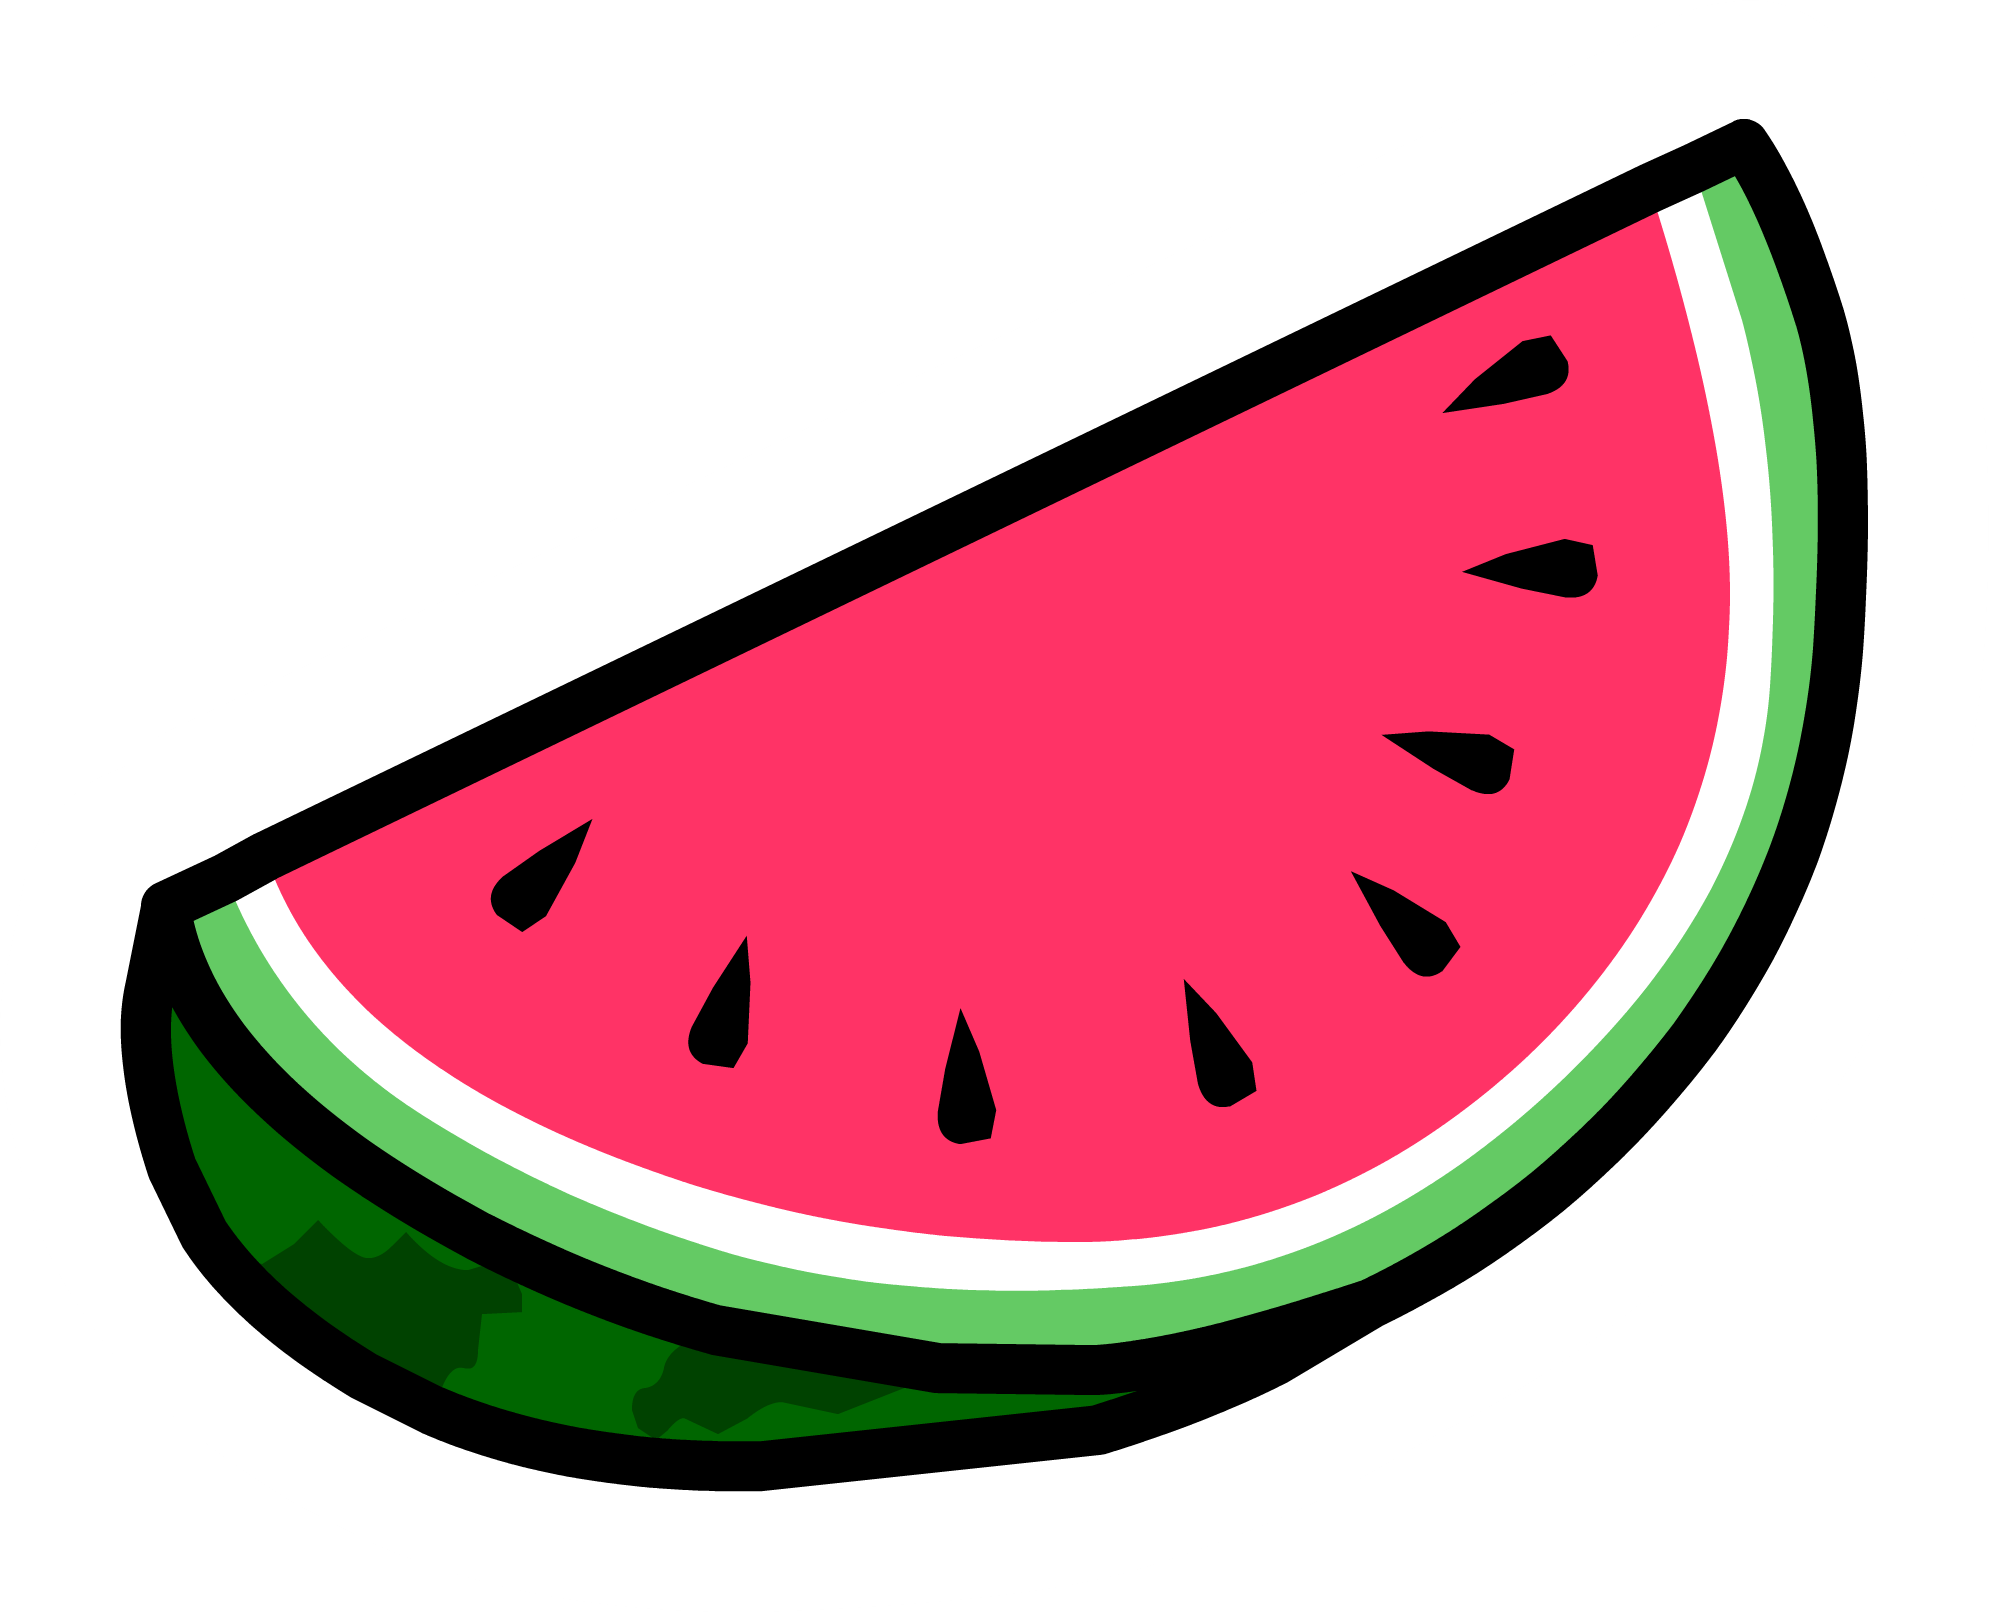 1989x1613 Watermelon Clipart Transparent Background